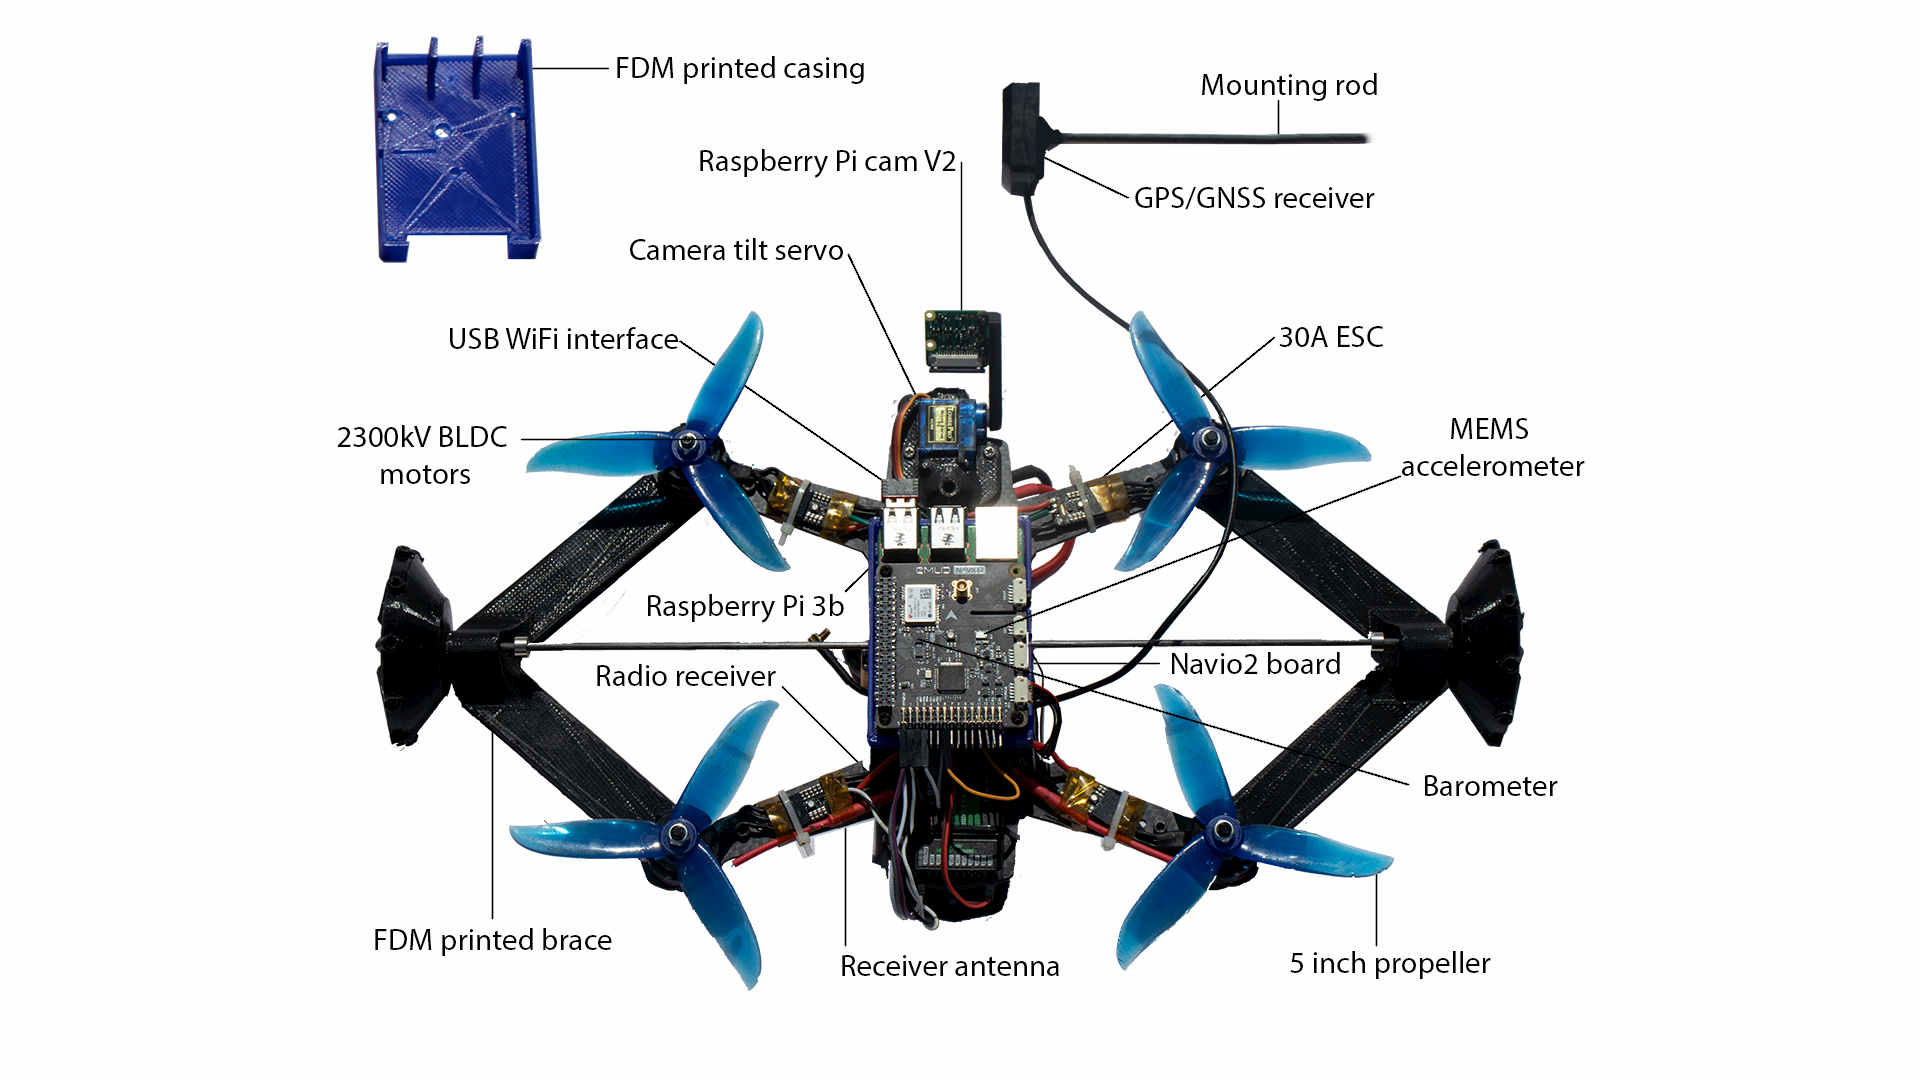 — Geographical Mapping with Hybrid Aerial/Terrestrial Drones